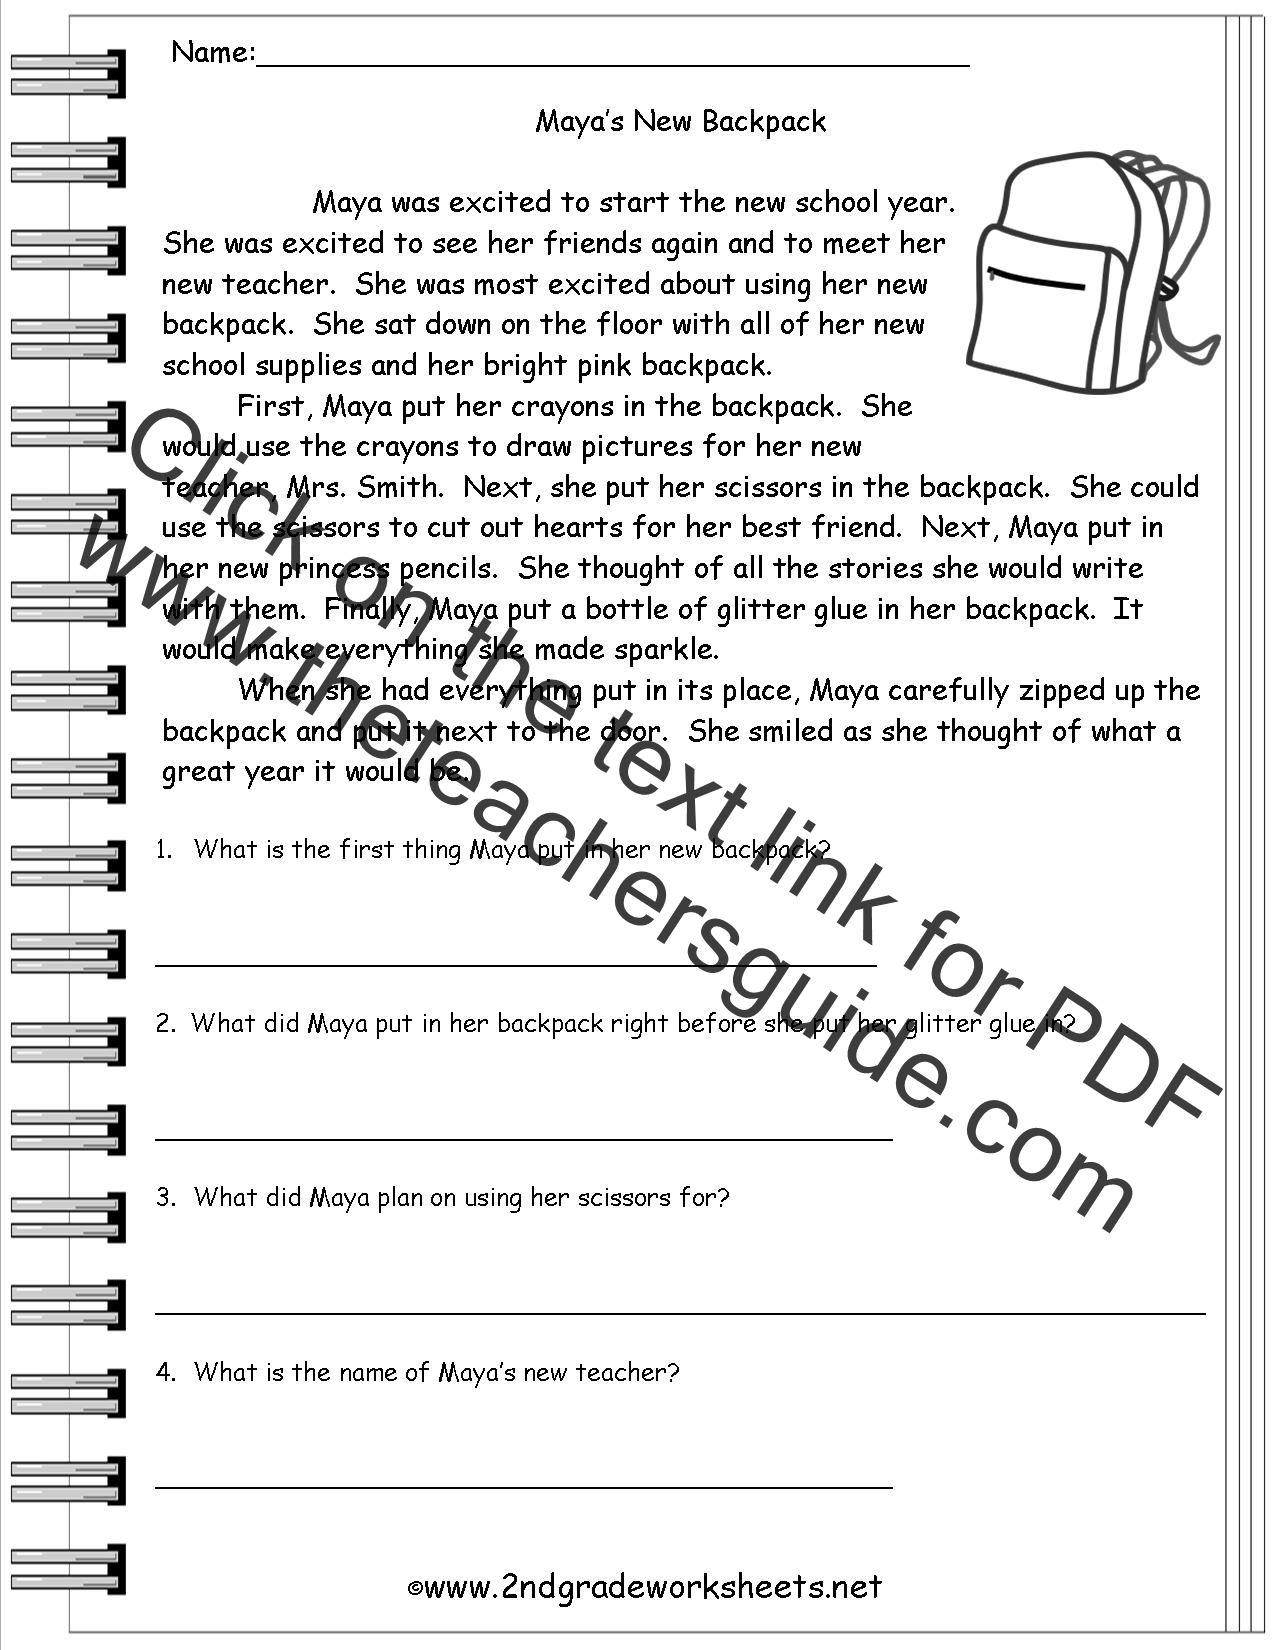 worksheet Grade 4 Literacy Worksheets reading worksheeets worksheets